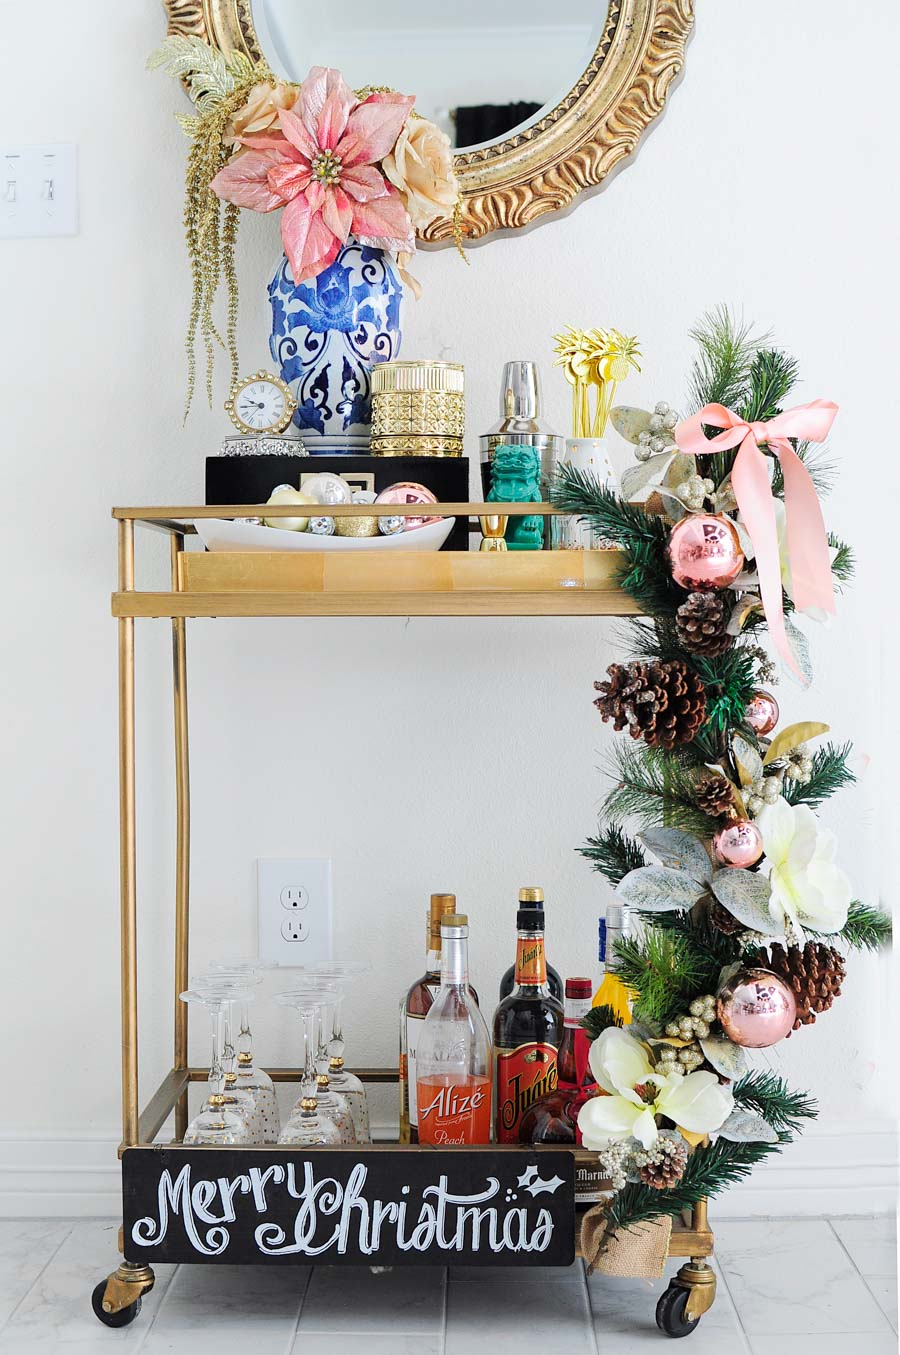 A gorgeous, eclectic bar cart decorated with blush, silver, gold and white accents, a ginger jar vase, foo dog and more. The gold mirror above the cart is perfection.